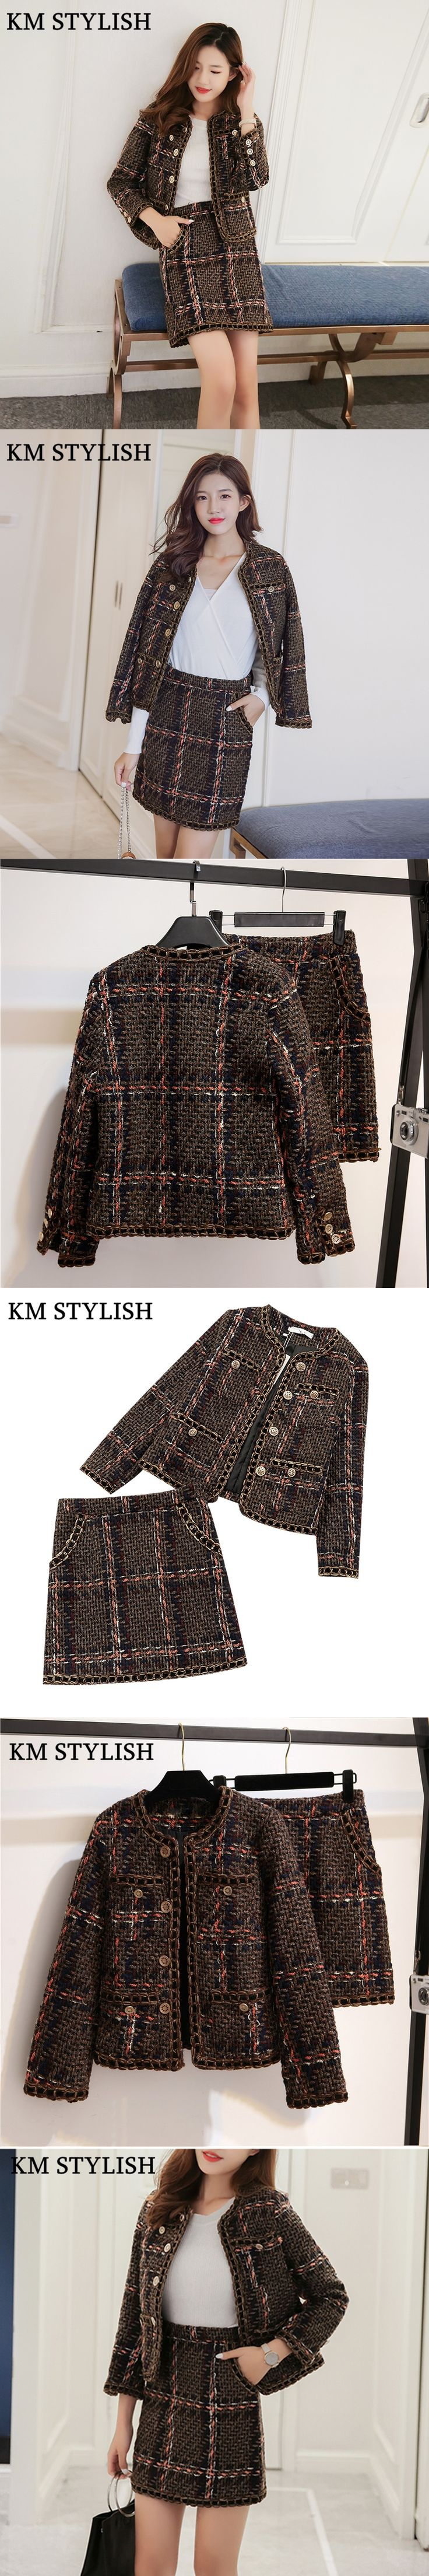 2017 Spring and Autumn New Arches Woolen Two-piece Set Skirt Womens Fashion Jacket Bunny Skirt